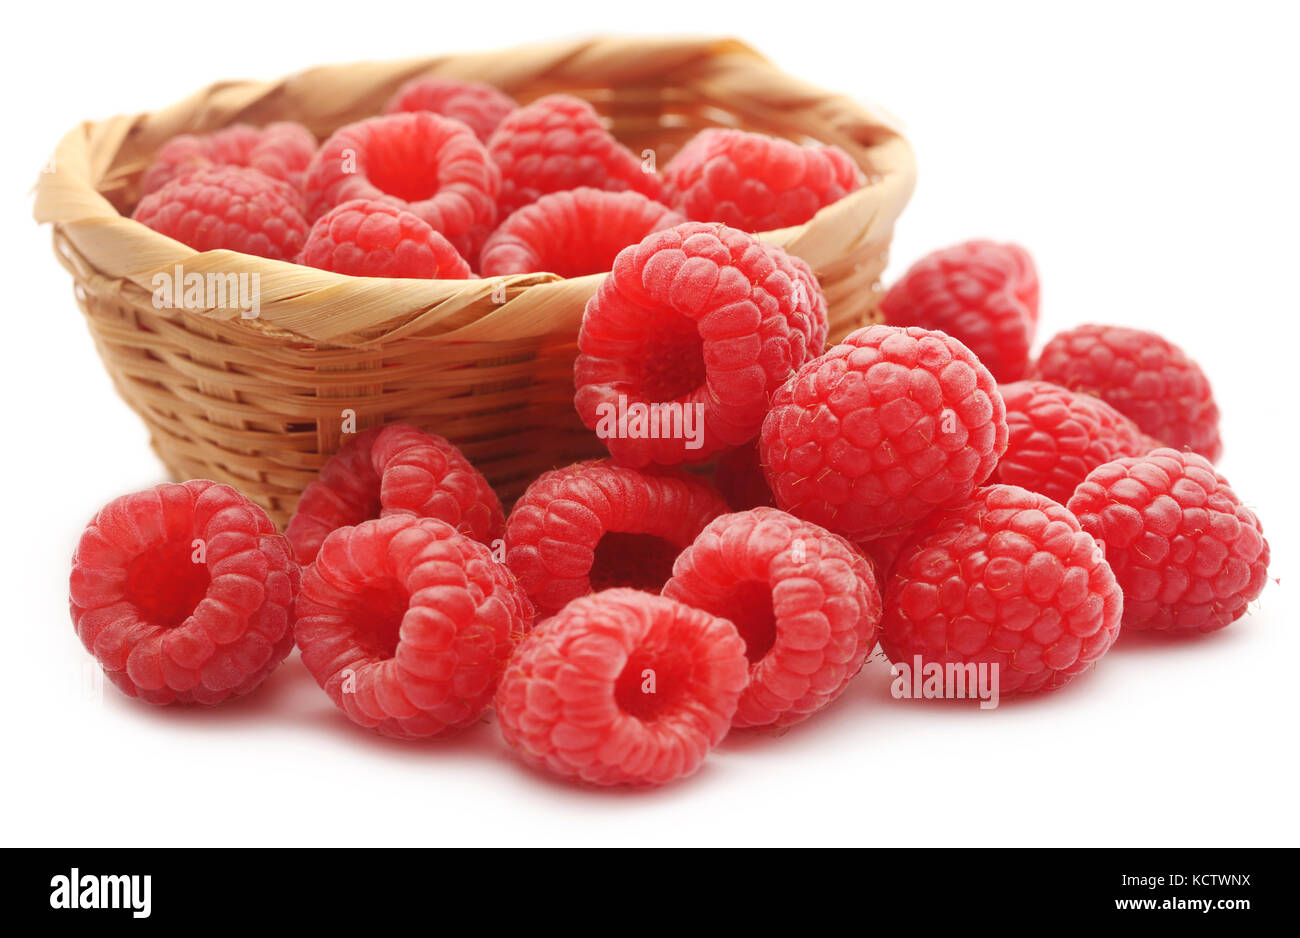 Fresh Raspberry in a basket over white background - Stock Image